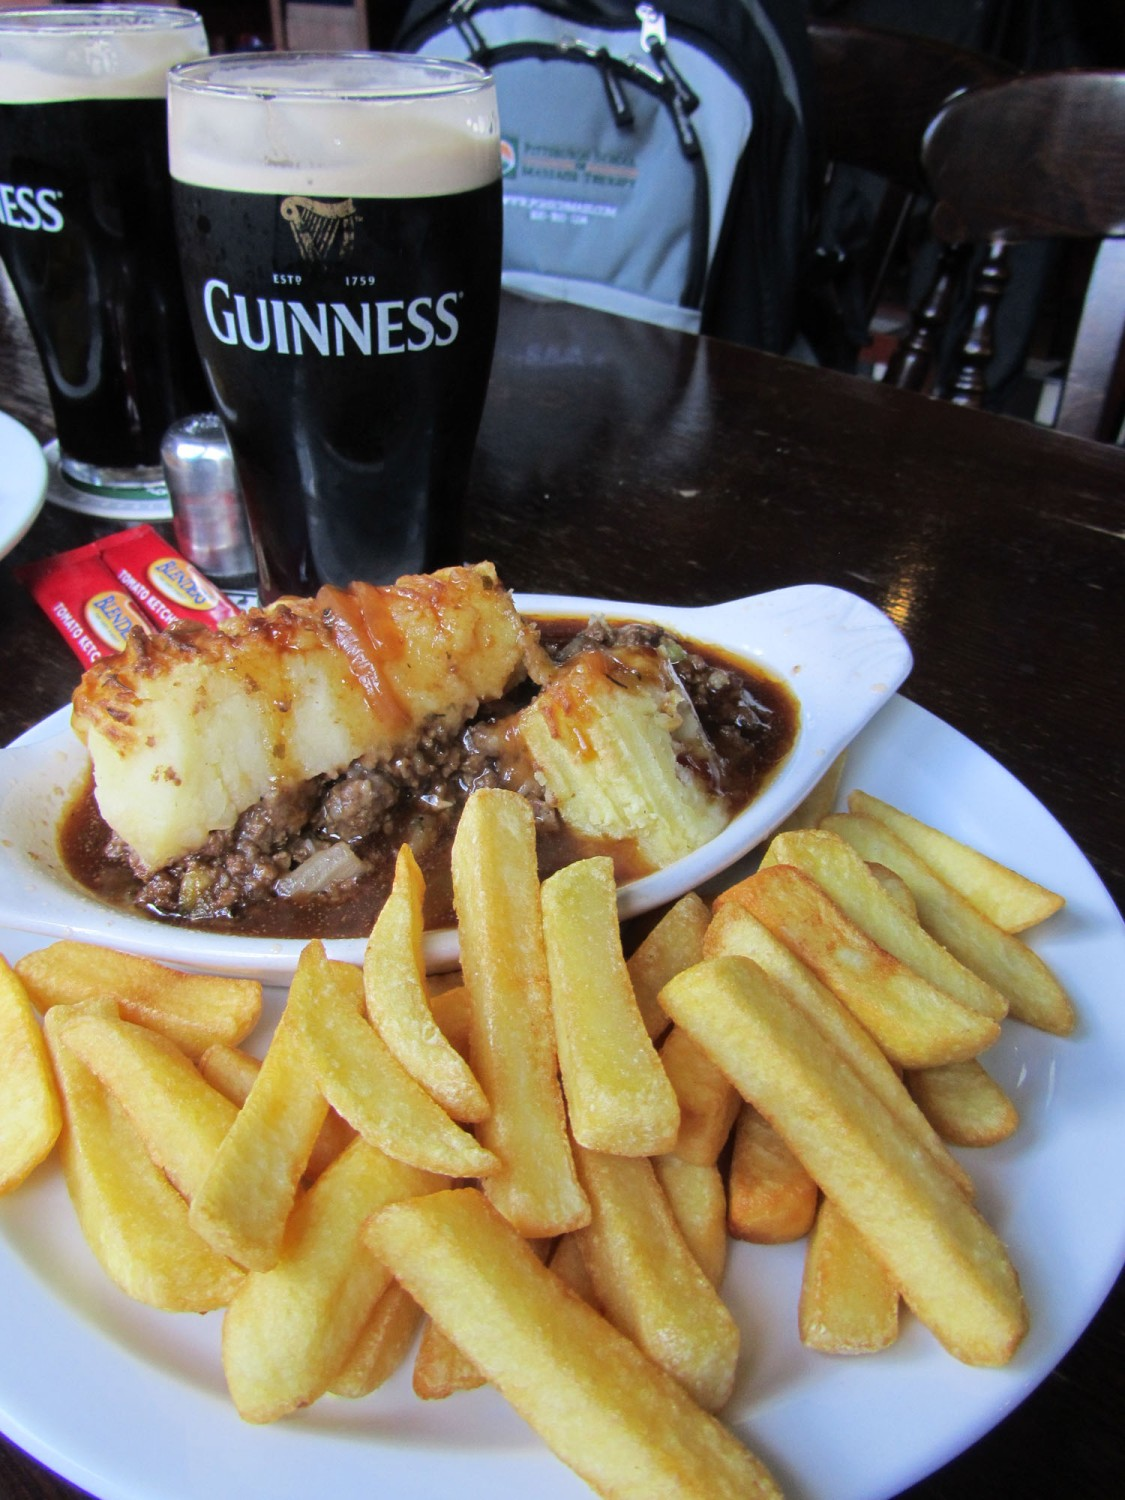 Ireland-Food-And-Drink-Shepherds-Pie-Guinness